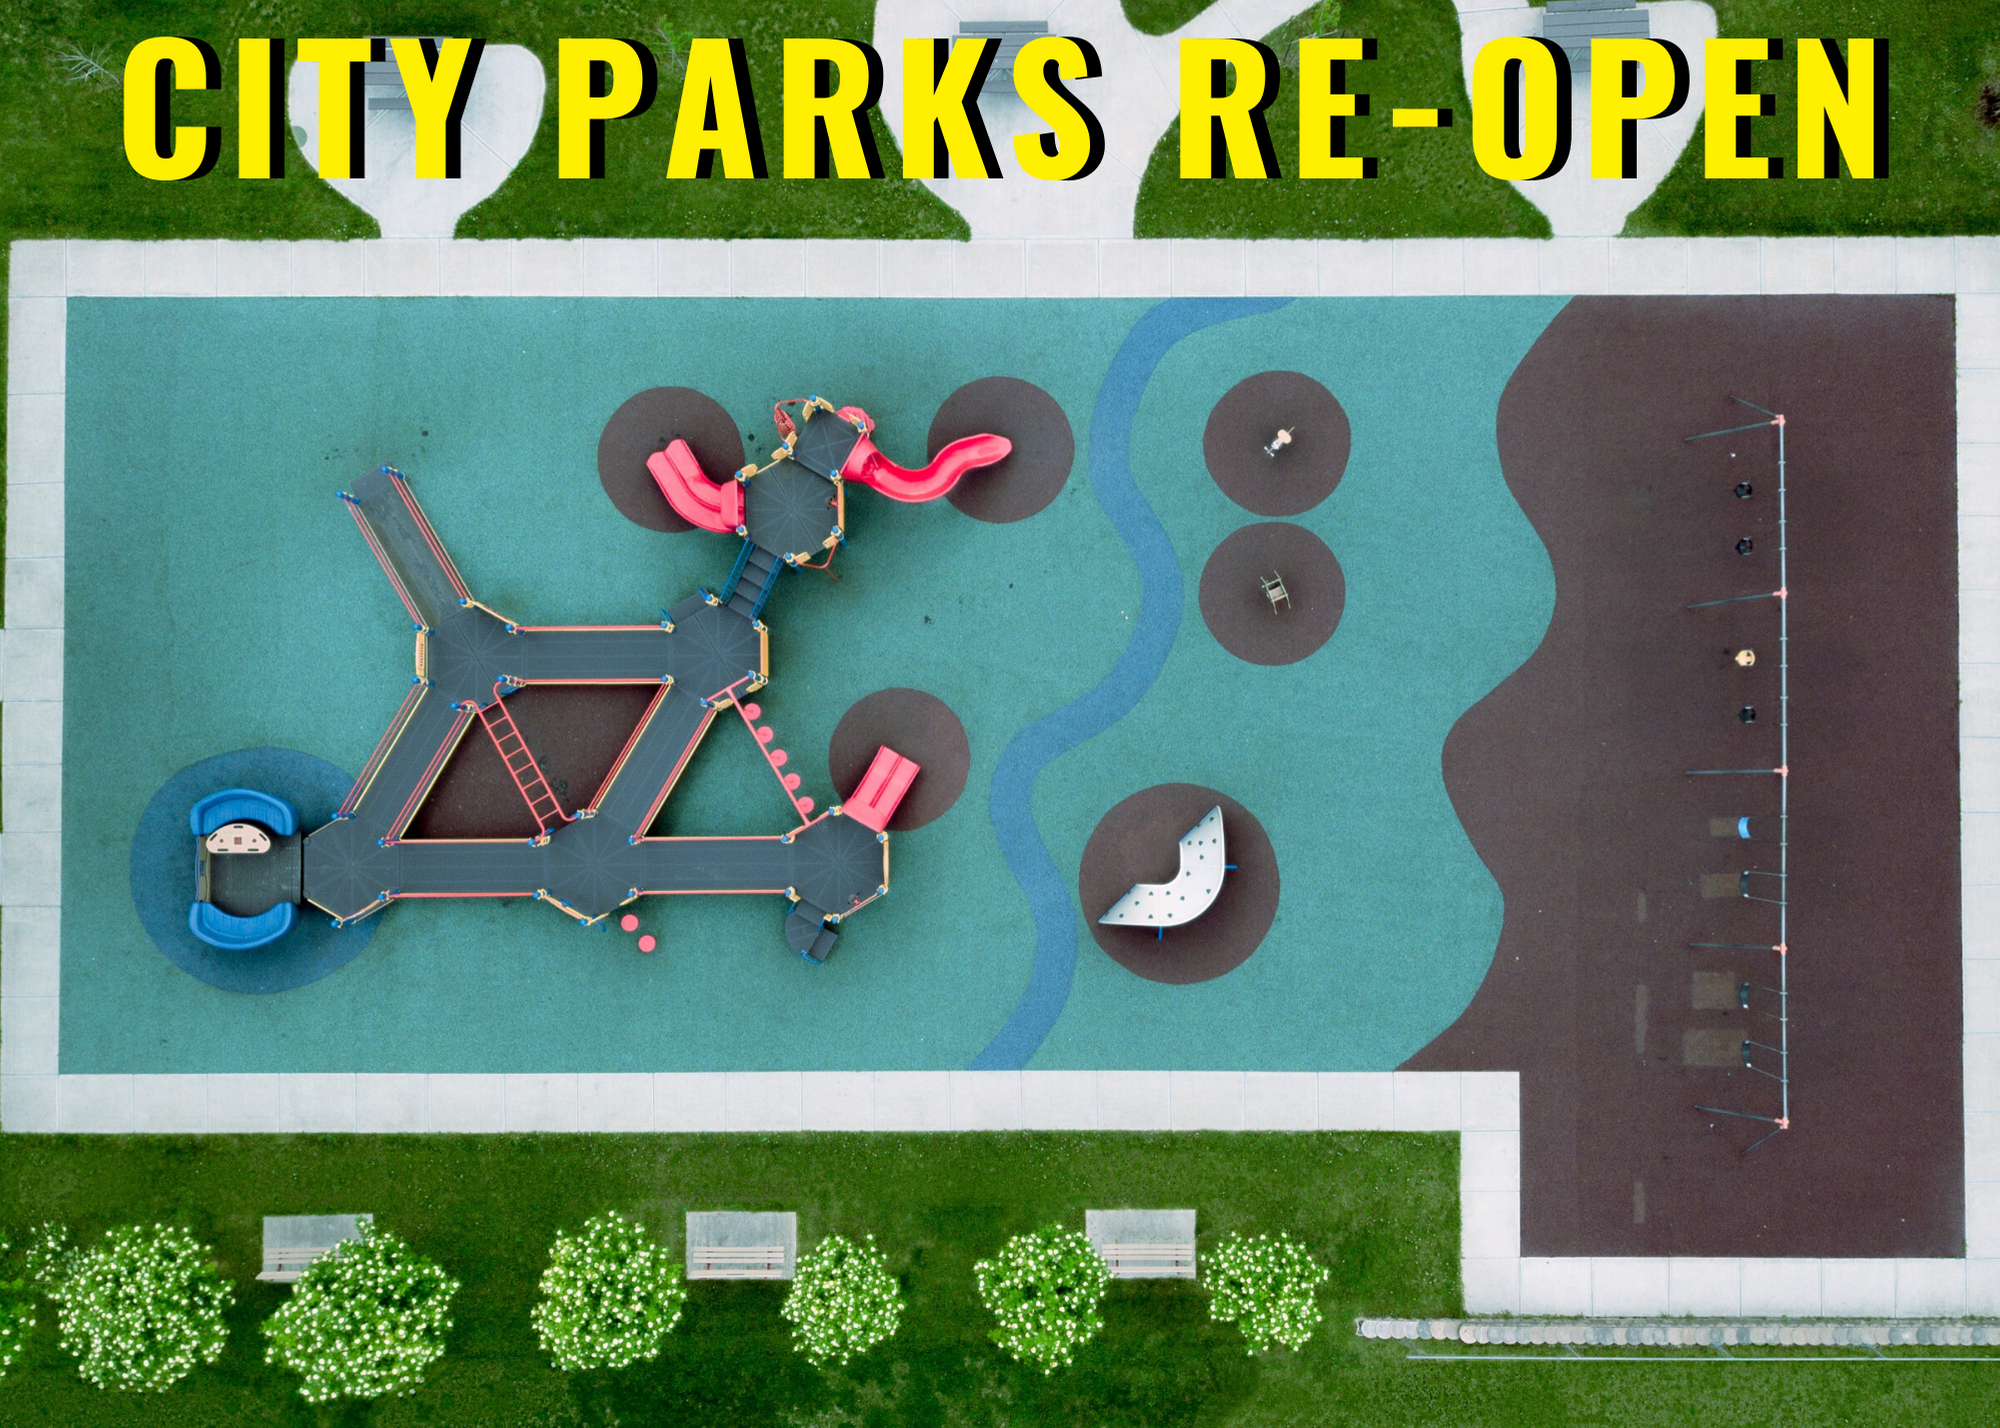 City parks re-open